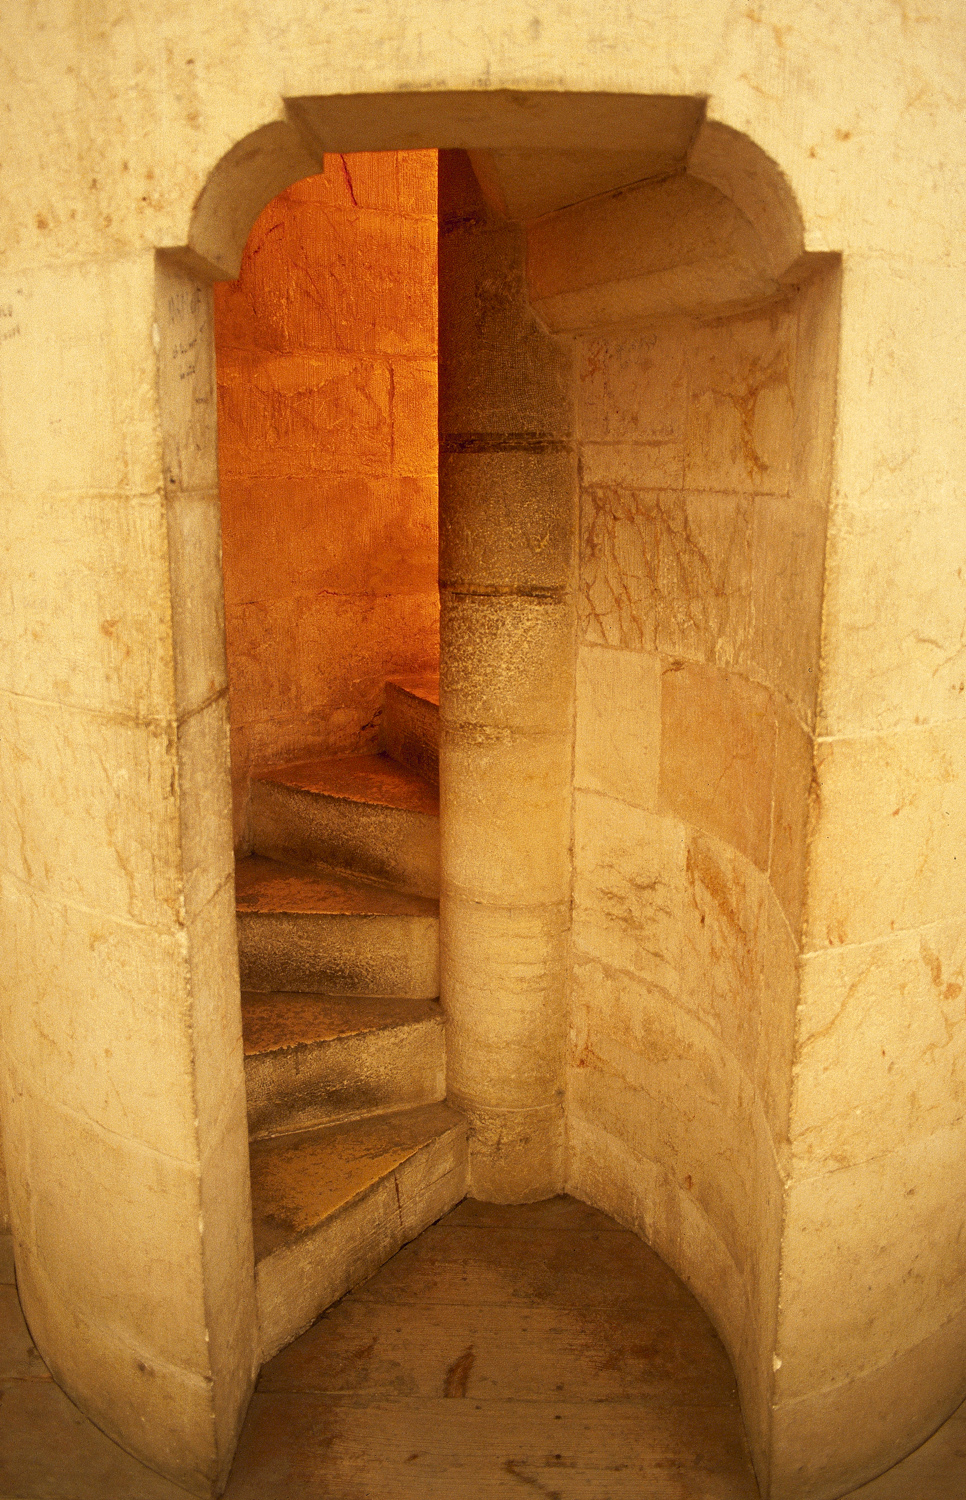 Tower stairway in the Church of the Redeemer - Old City of Jerusalem, 1981